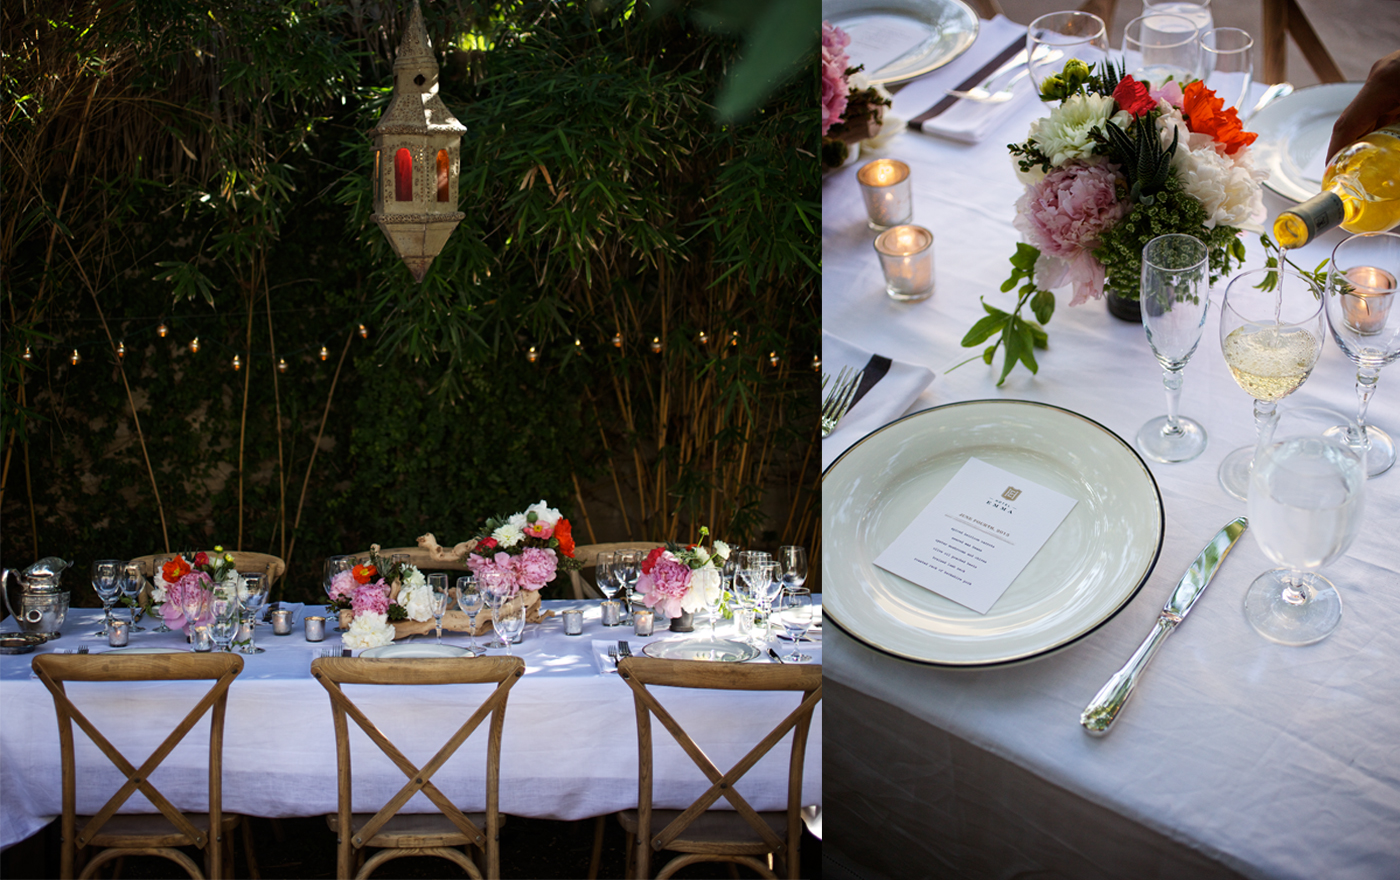 A double picture of a private dining experience. Pictured is a white table with four flower bouquets  and wooden chairs.  Second picture is a plate with a Hotel Emma menu.